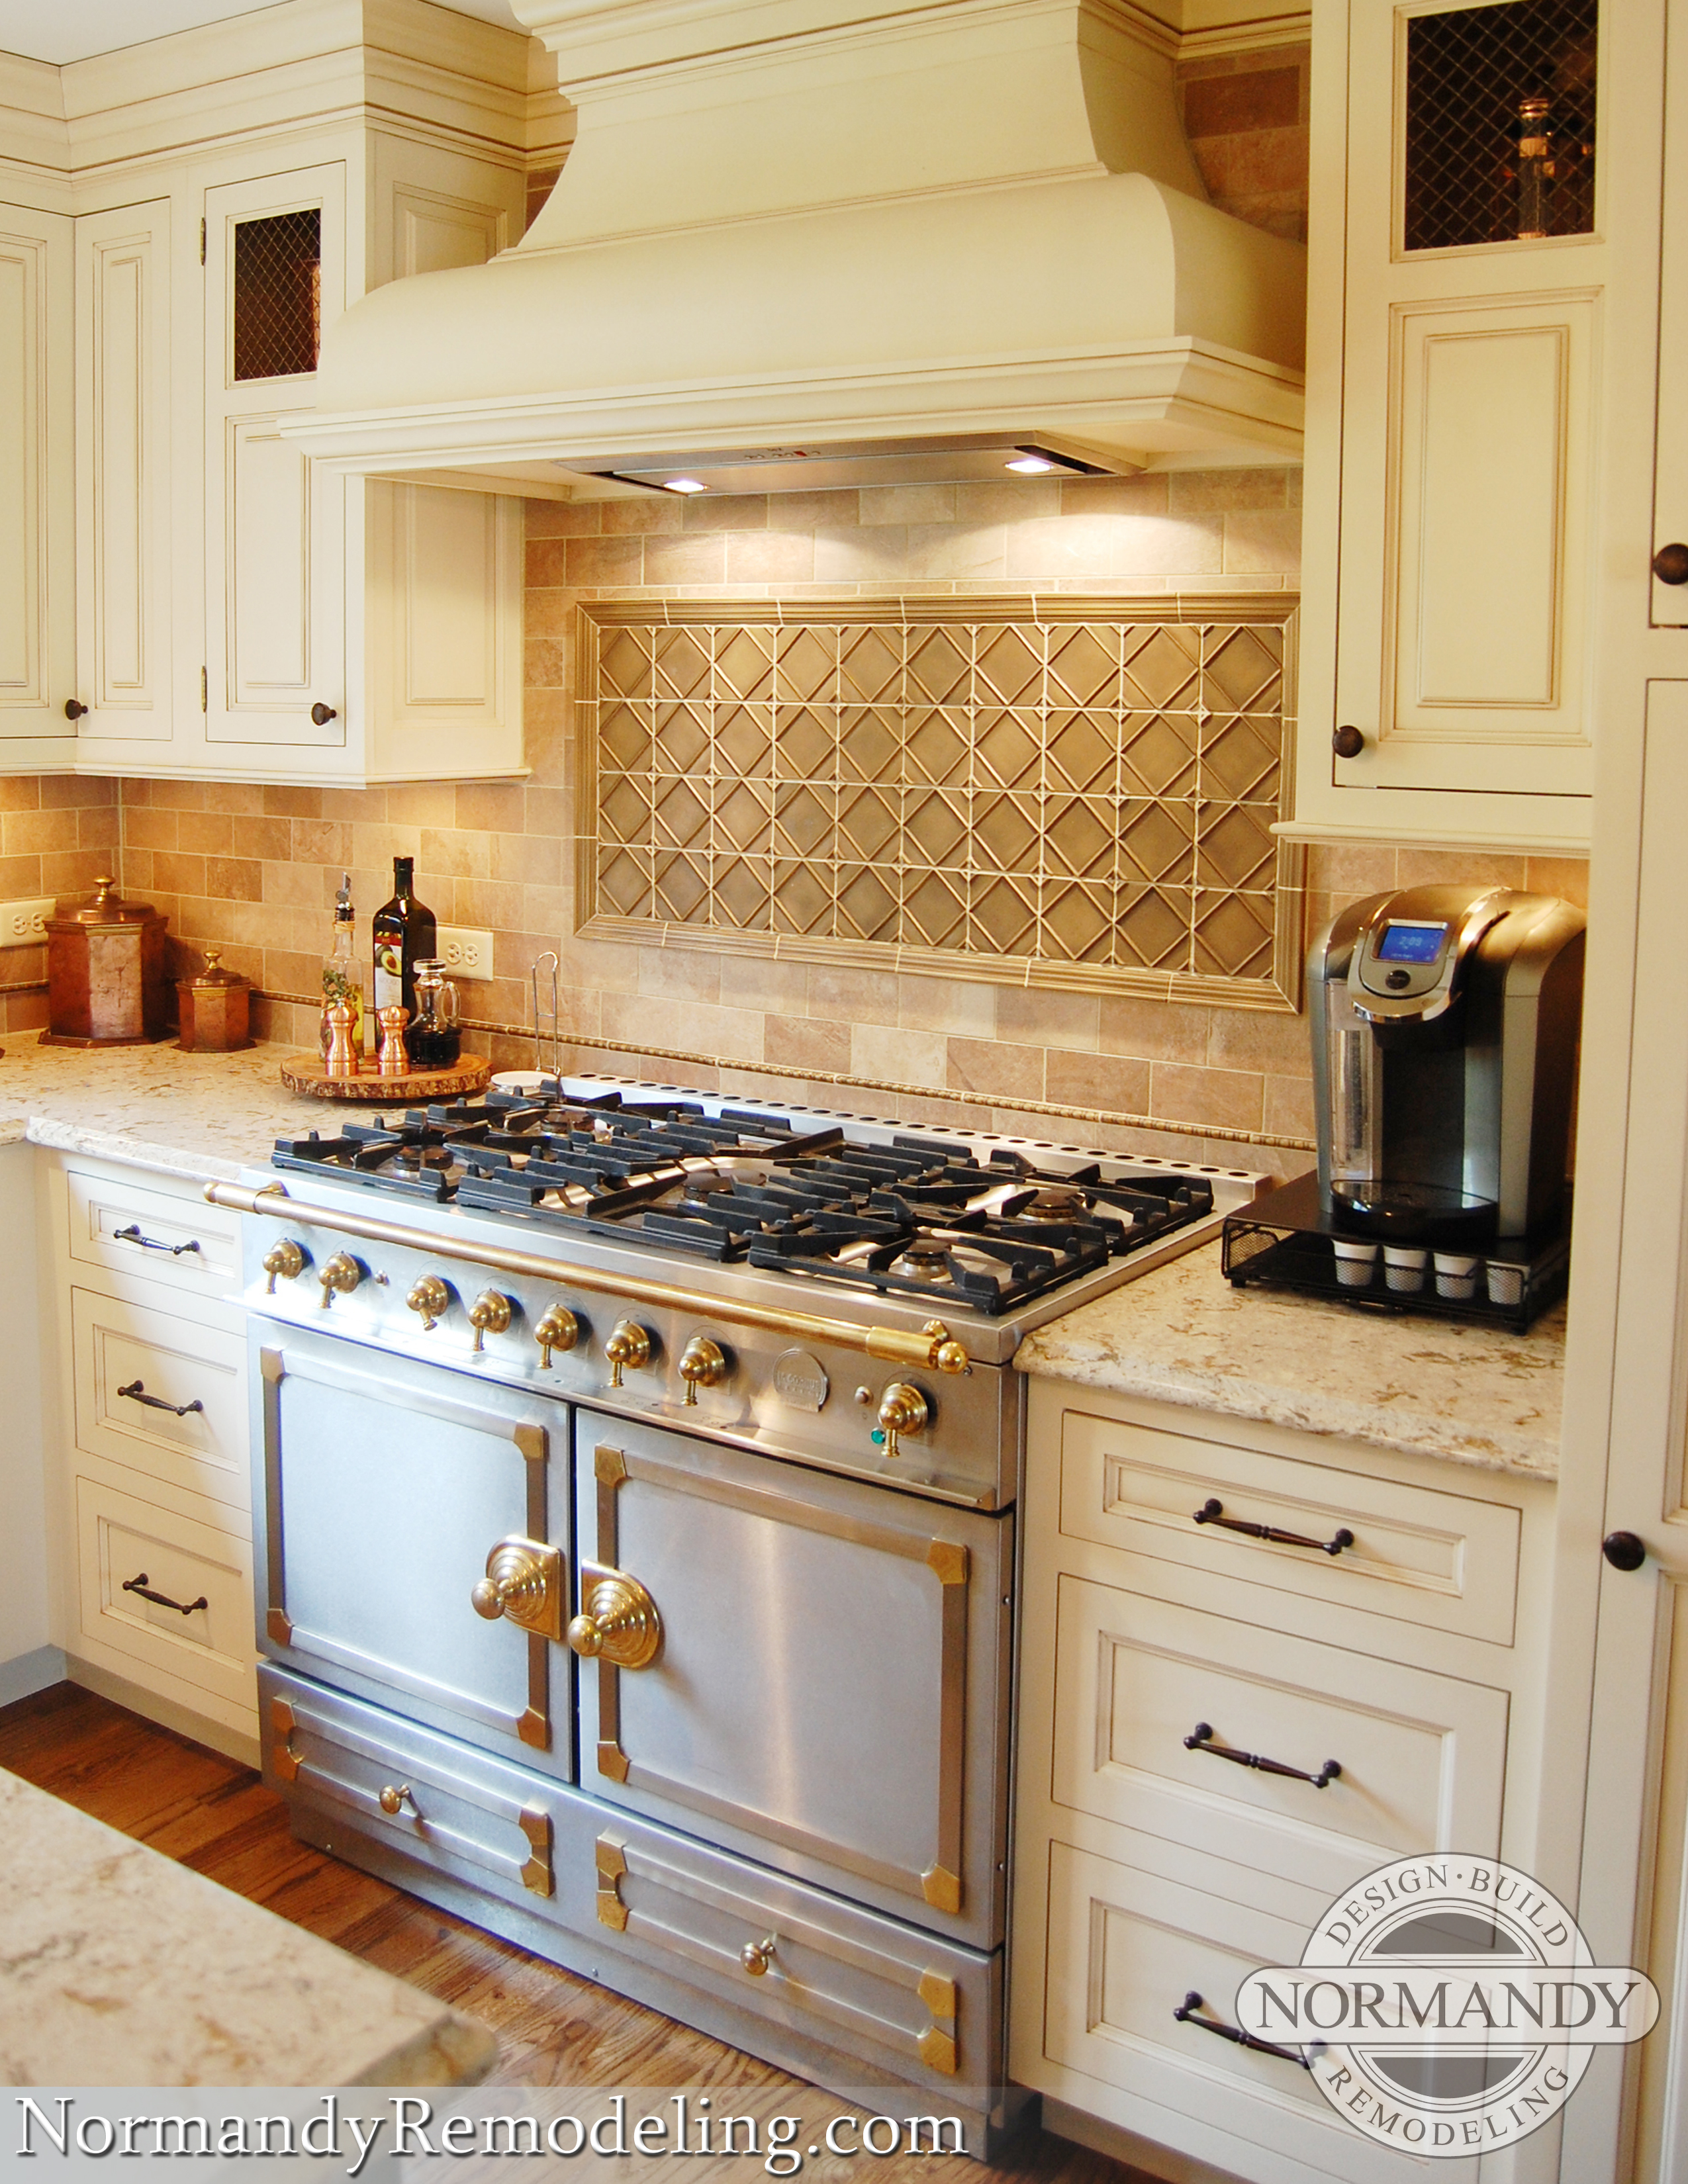 How To Mix Metal Finishes In Your Kitchen Normandy Remodeling